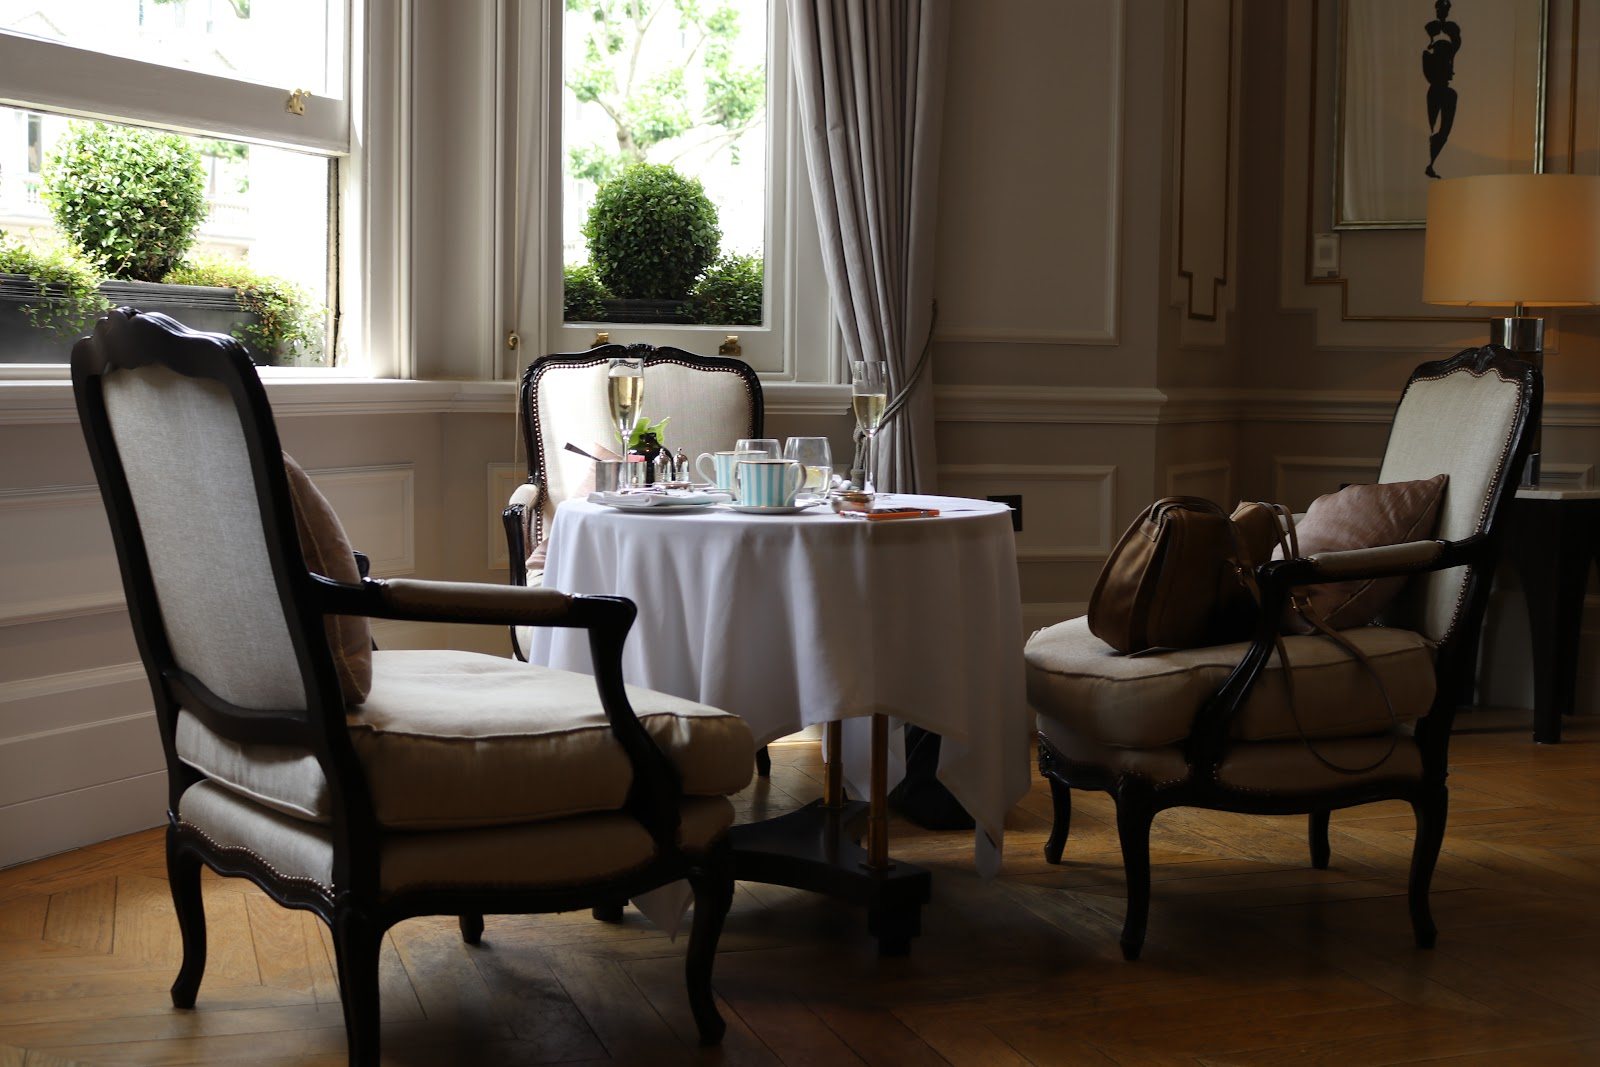 Afternoon Tea, The Town House, The Kensington Hotel, Kensington, Chelsea, London